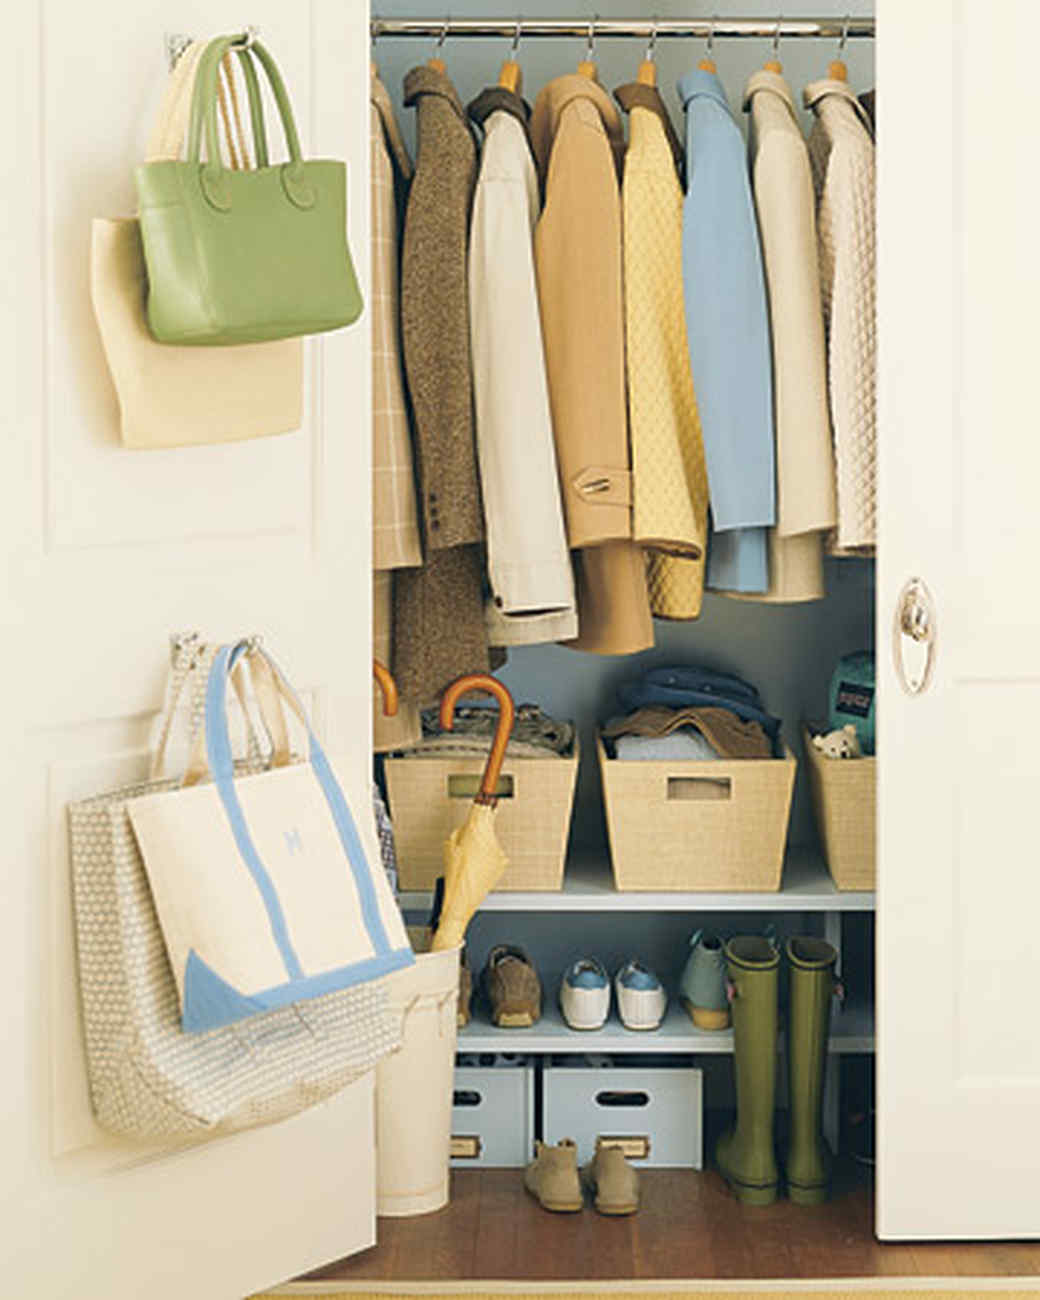 Coat Closet Organizer & Save Space in Closets Hallways and More | Martha Stewart